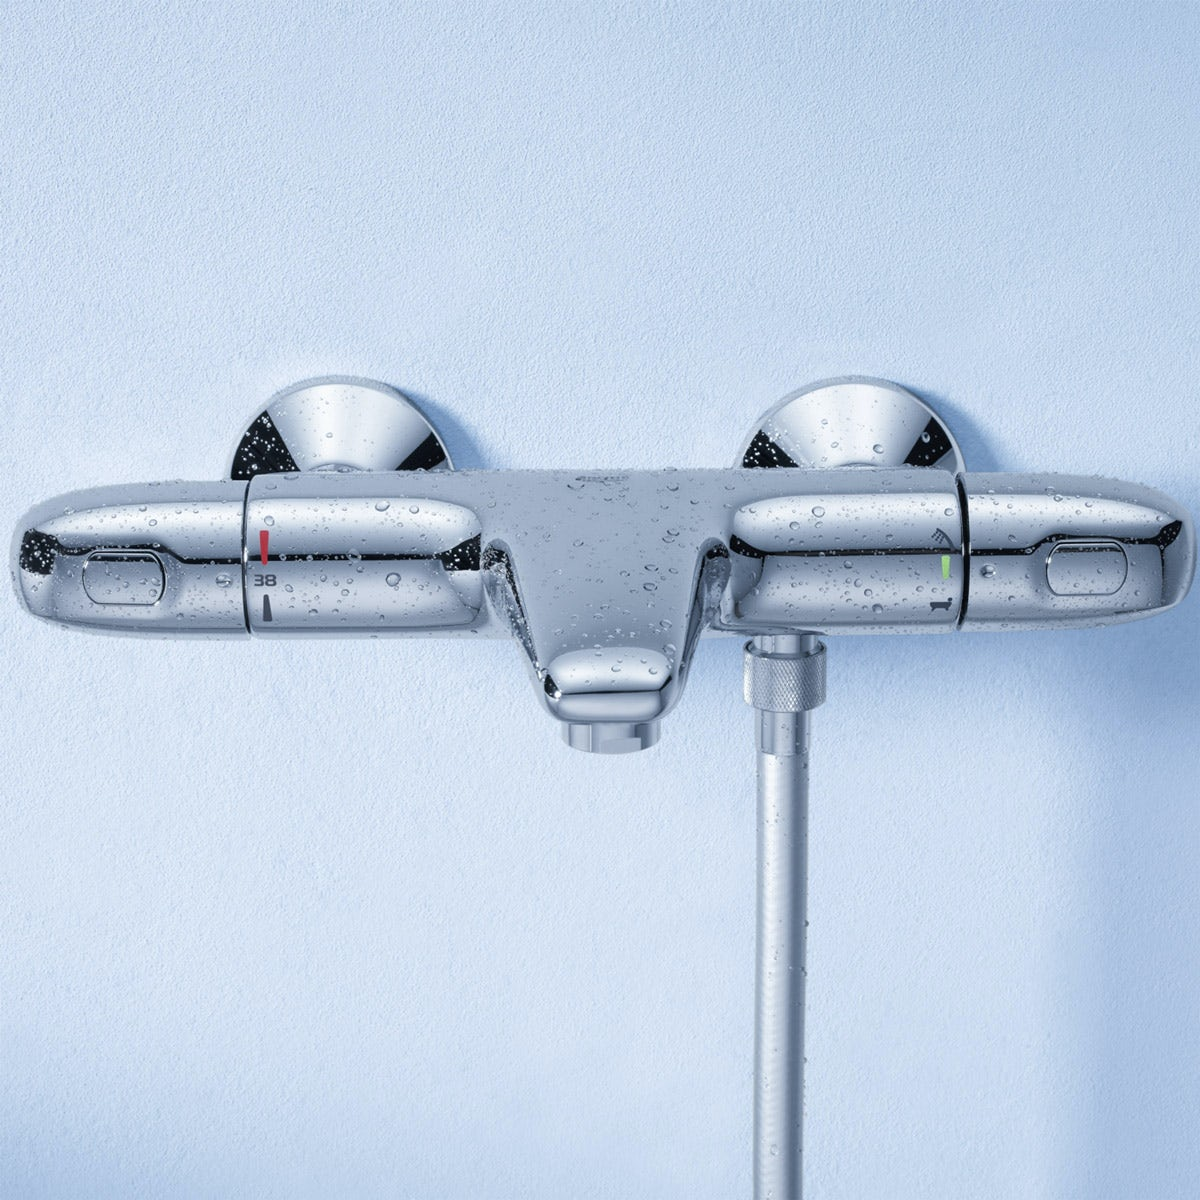 grohe 1000 thermostatic bath shower mixer. grohe grohtherm 1000 thermostatic bath shower mixer tap victoria plumb